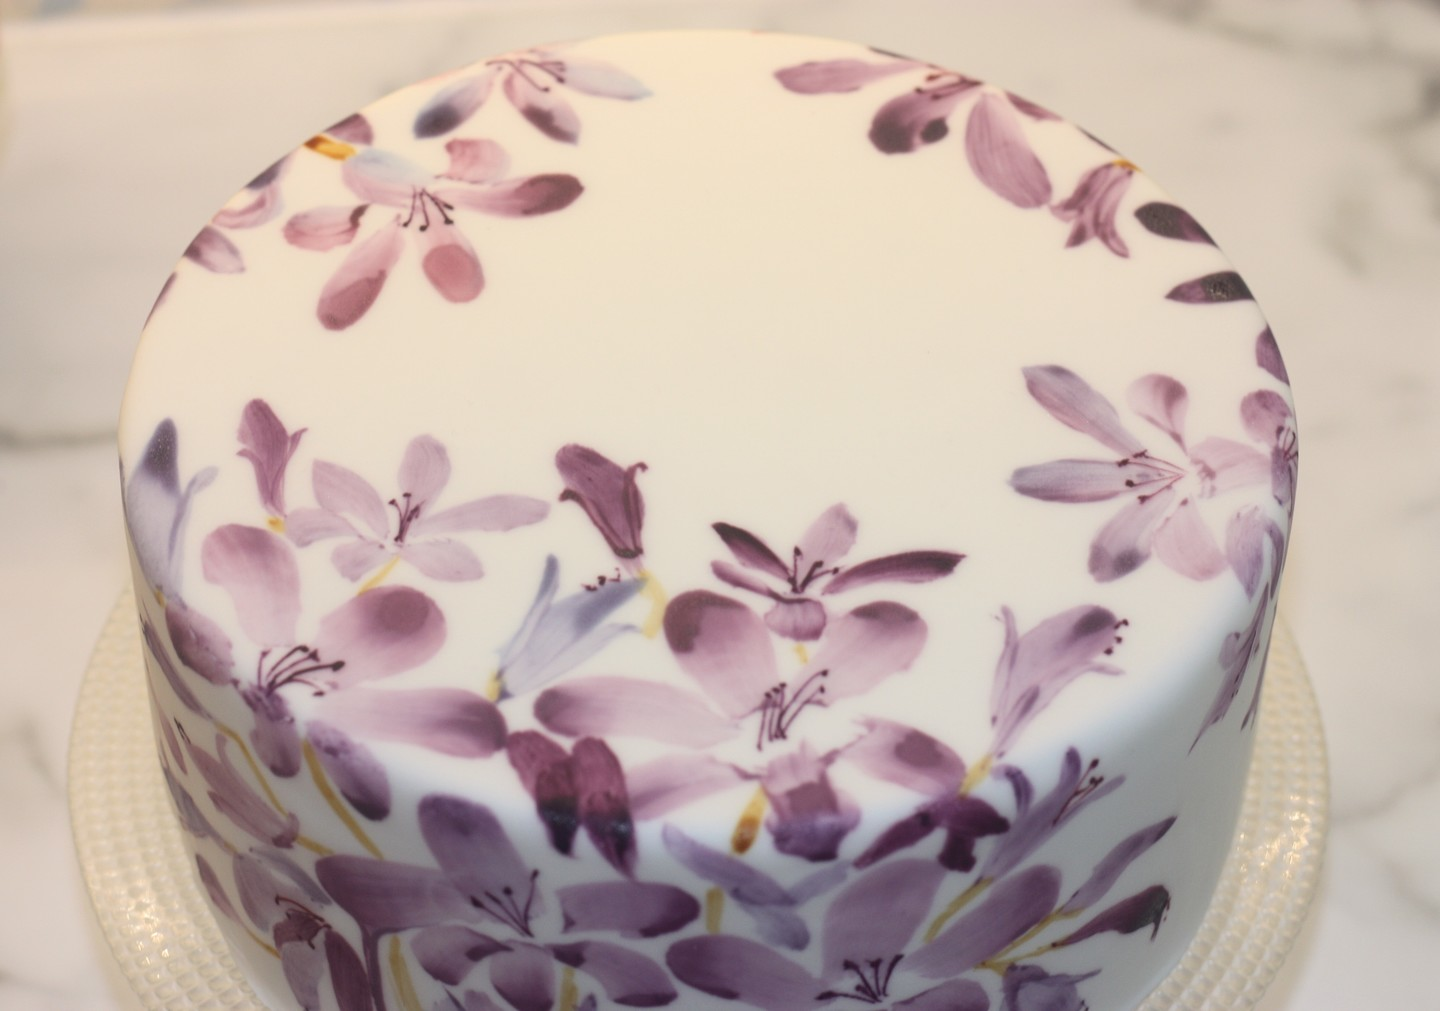 Handpainted lilys by crown your cake %281%29